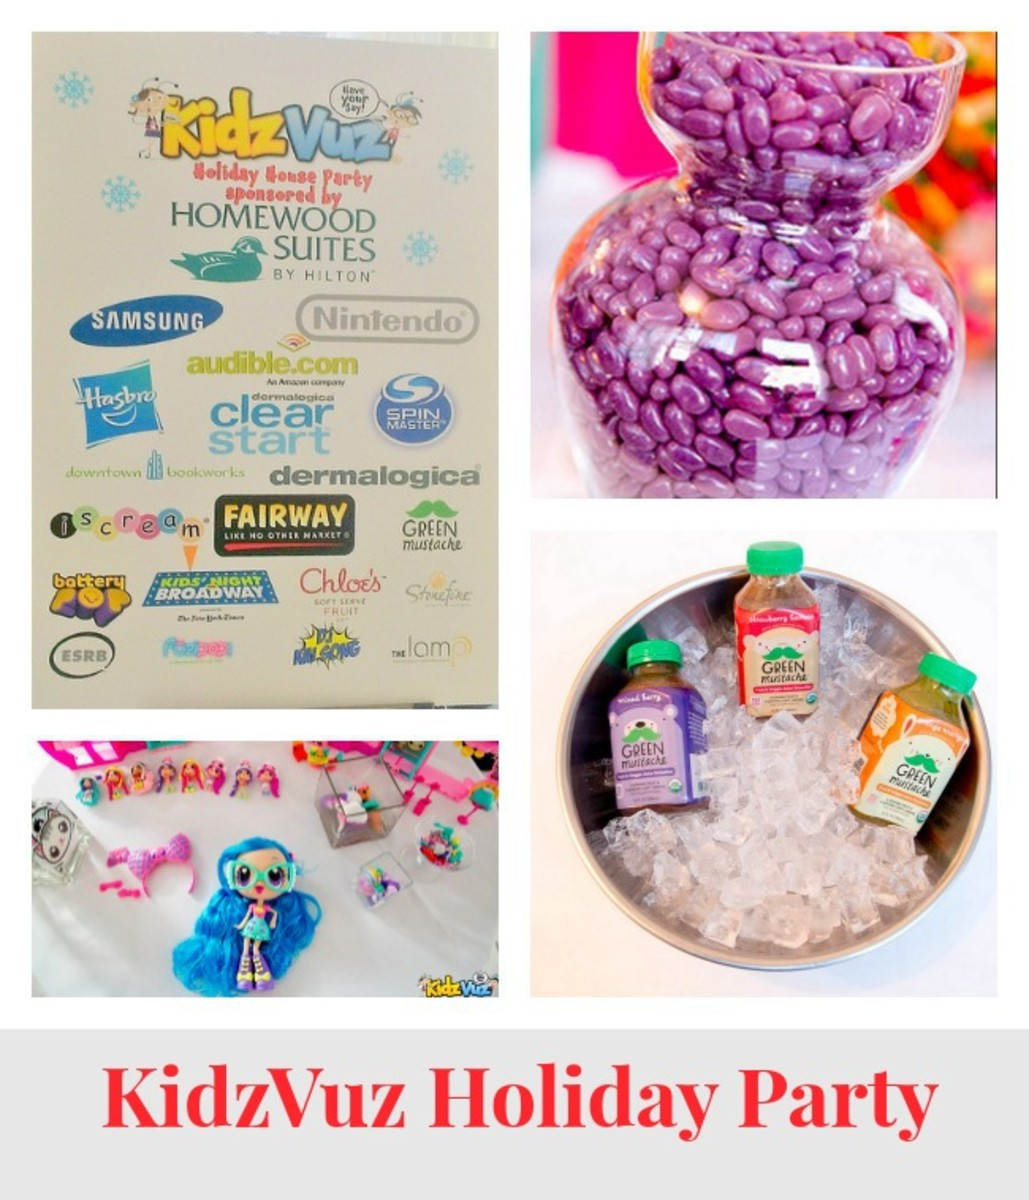 KidzVuz Holiday House Party